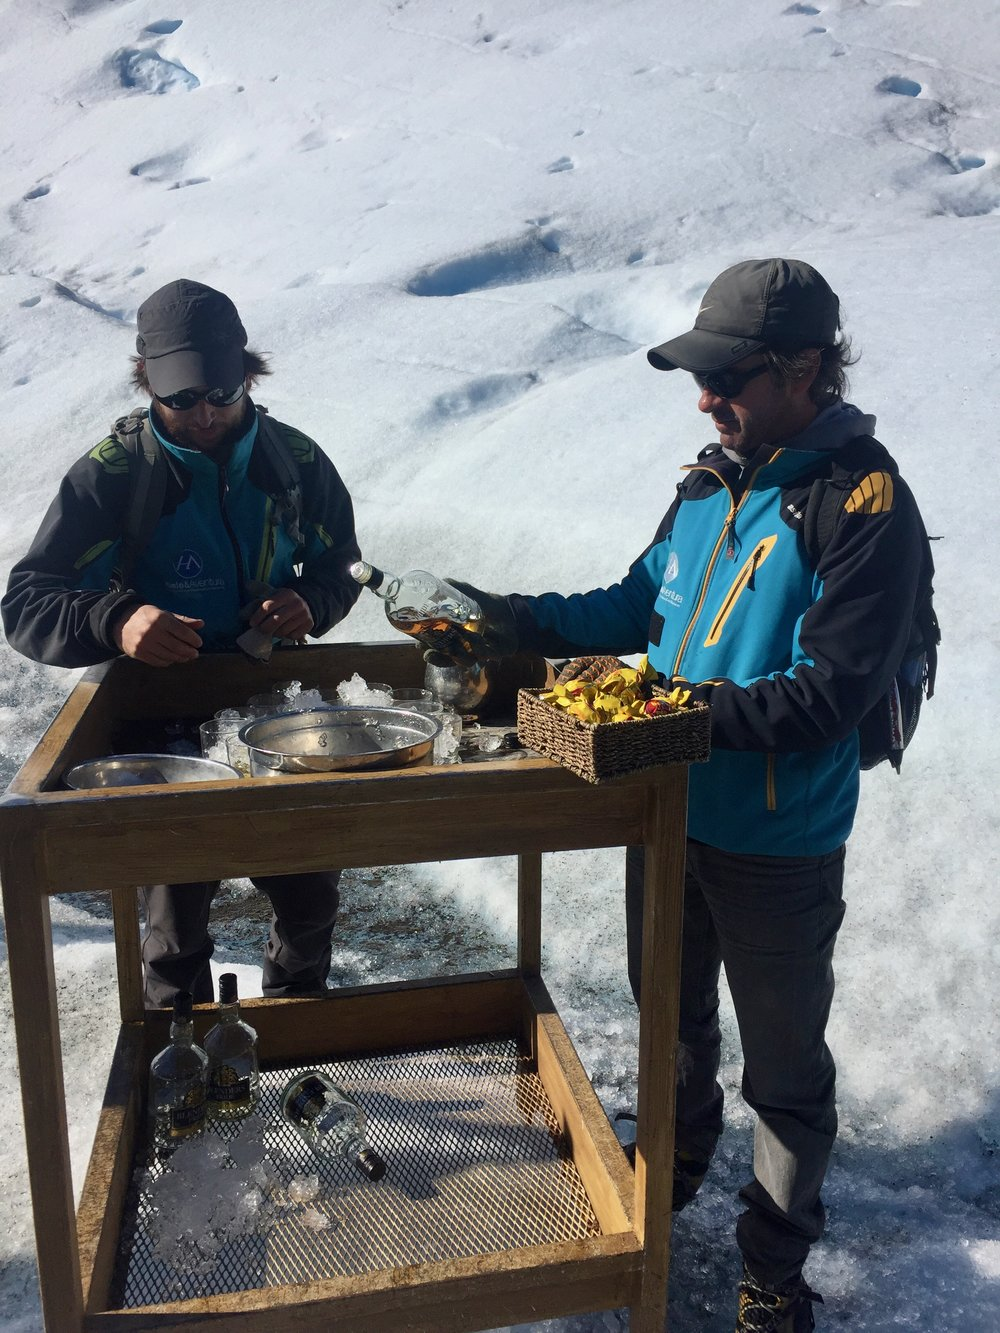 A makeshift bar at the base of a glacier. Salud!